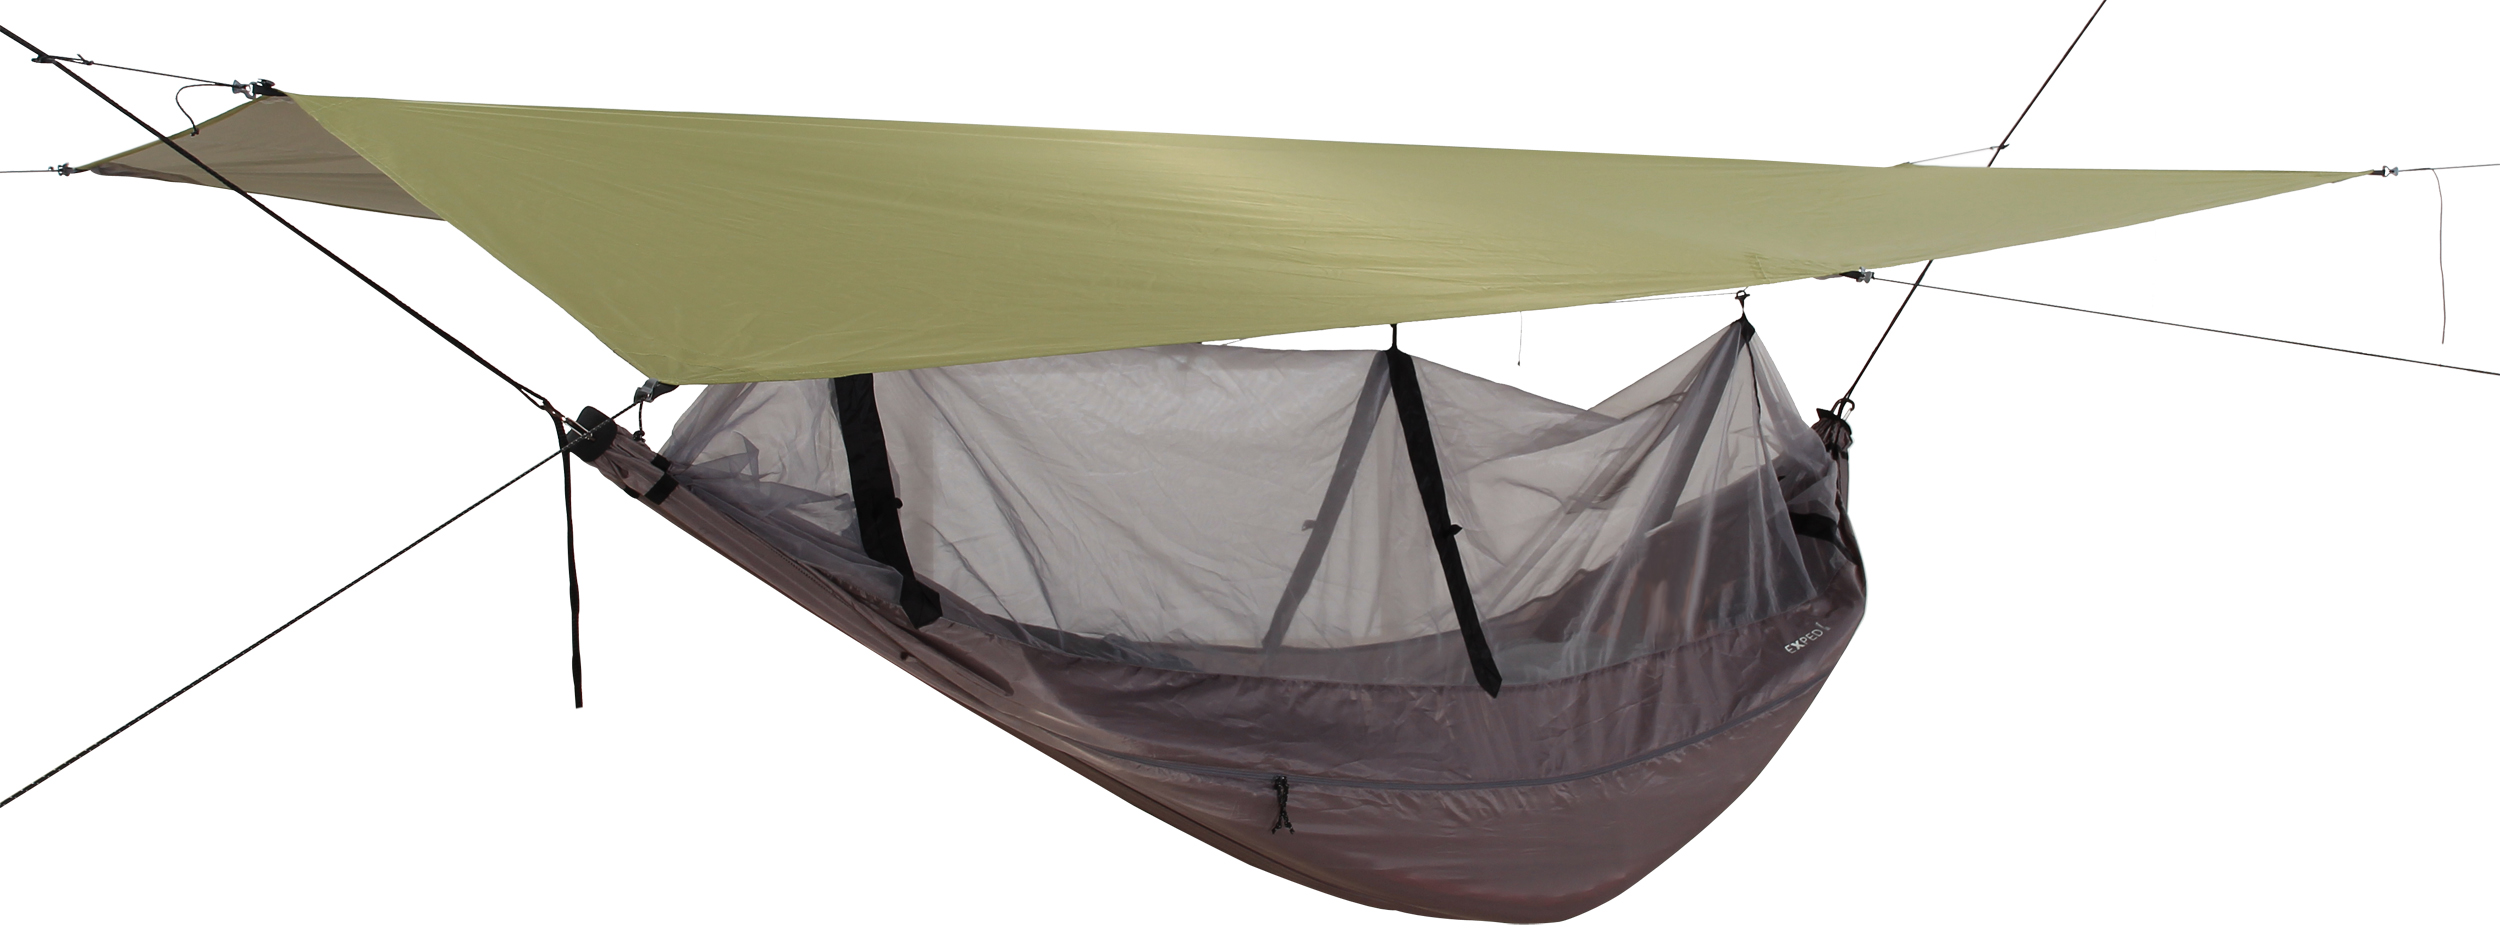 trash bags dgfyccbhbmqgdgvuda hammock sand and wall download tricks ex tarp tent combo filled bivy